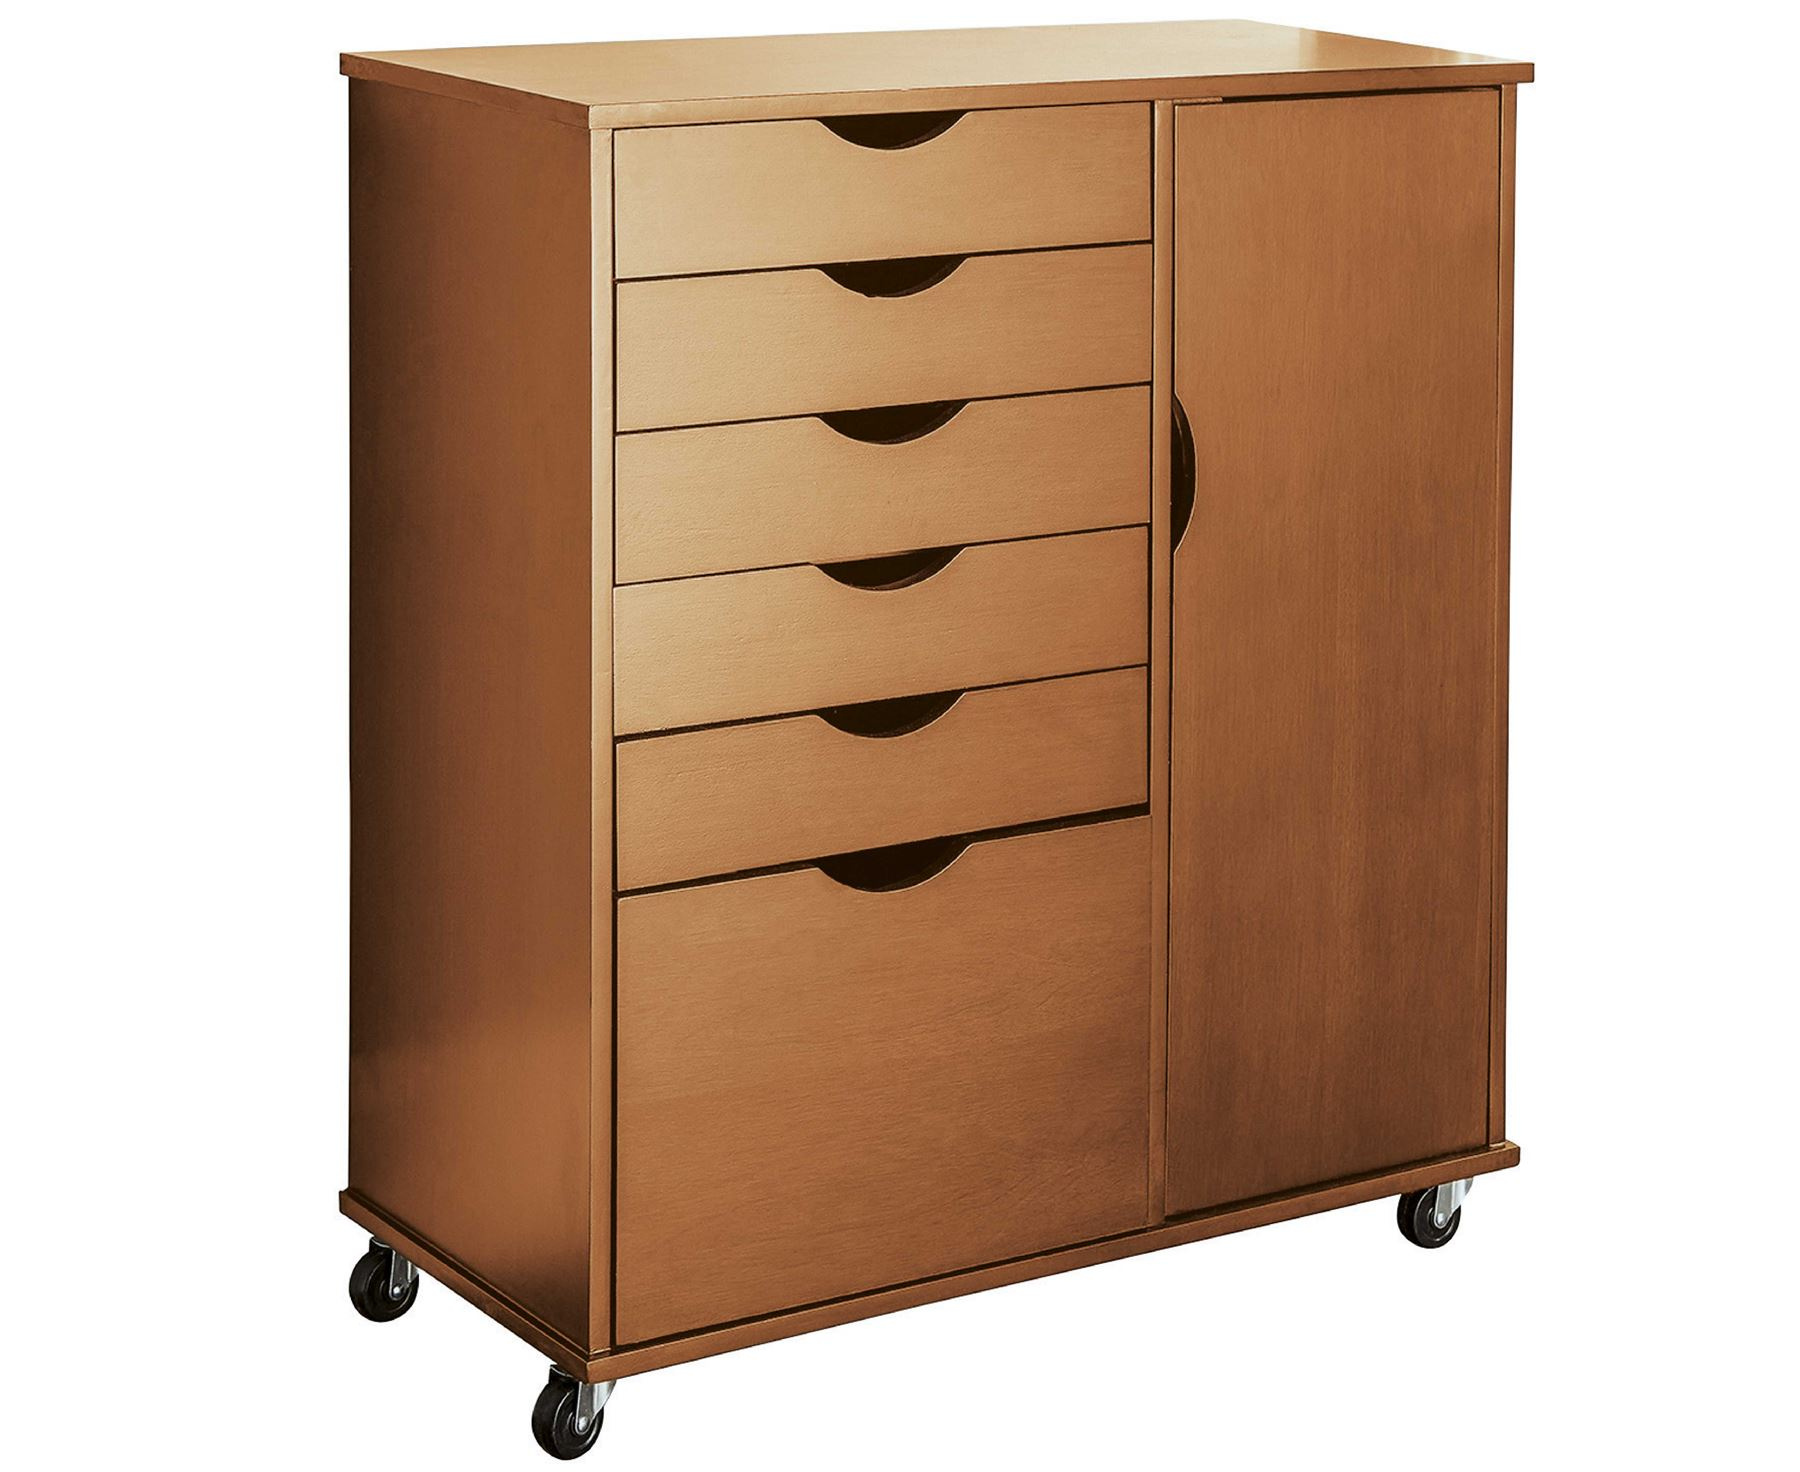 Salisbury mini home office storage unit furniture drawers